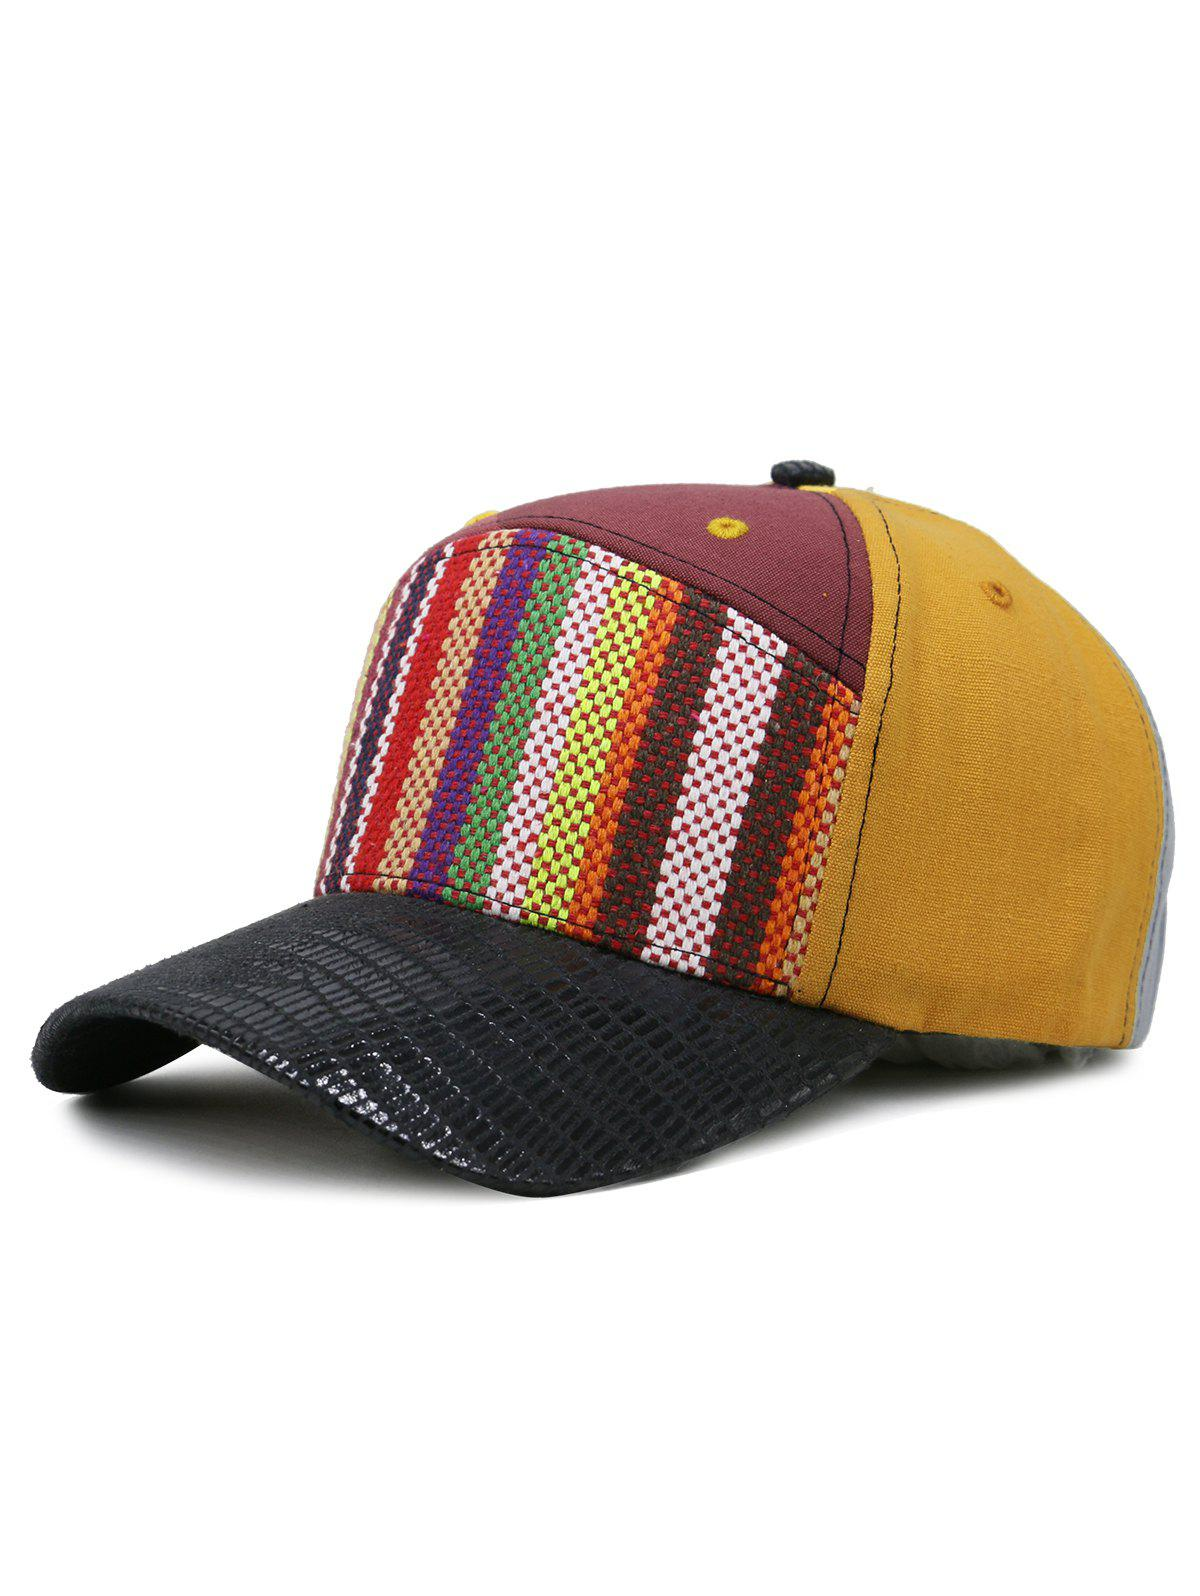 Affordable Line Embroidery Colored Baseball Cap